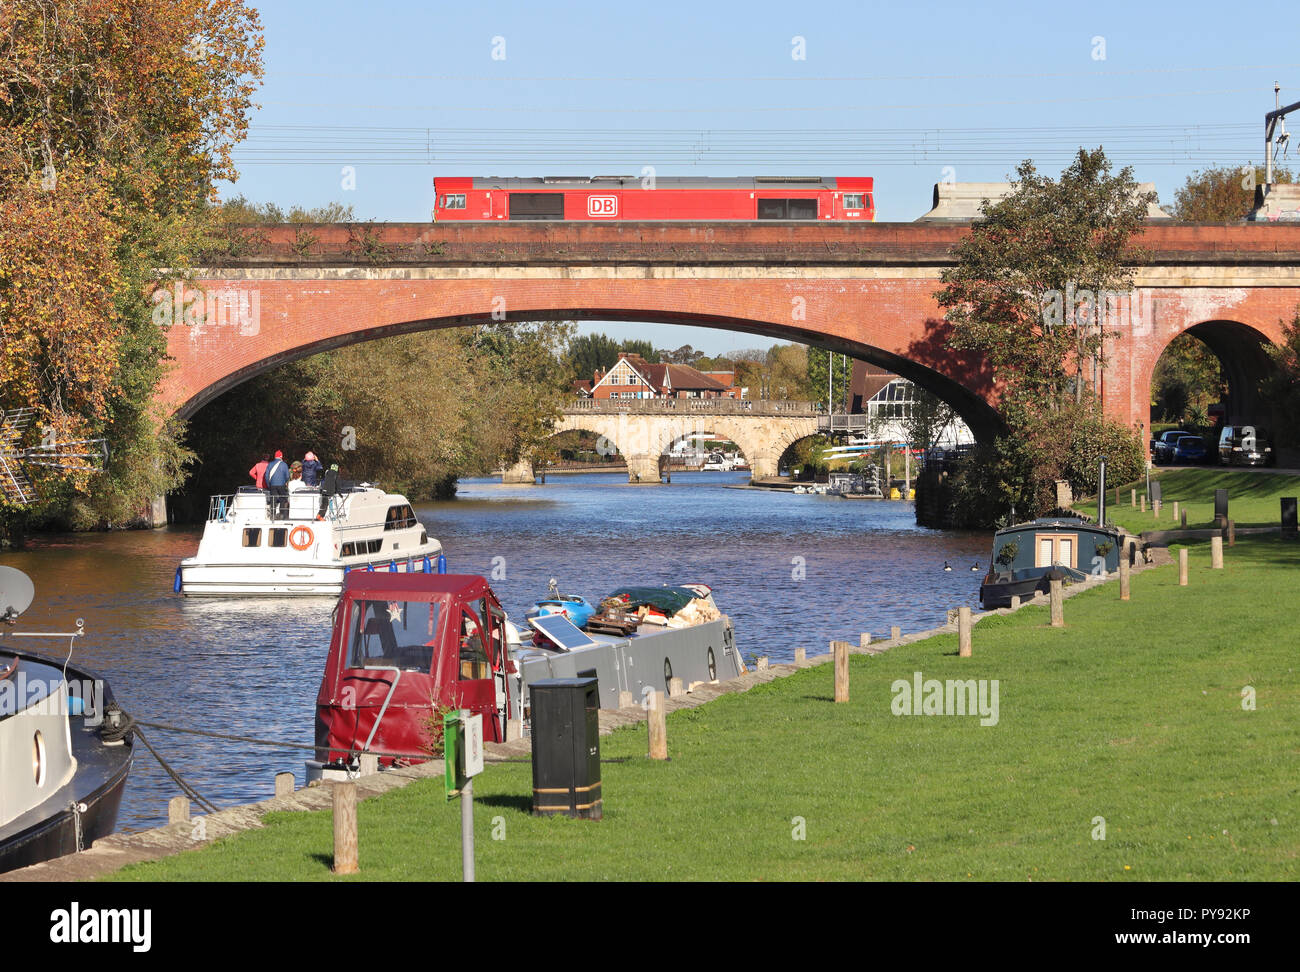 The River Thames in Maidenhead Berkshire, England with Brunel's sounding arch bridge - Stock Image